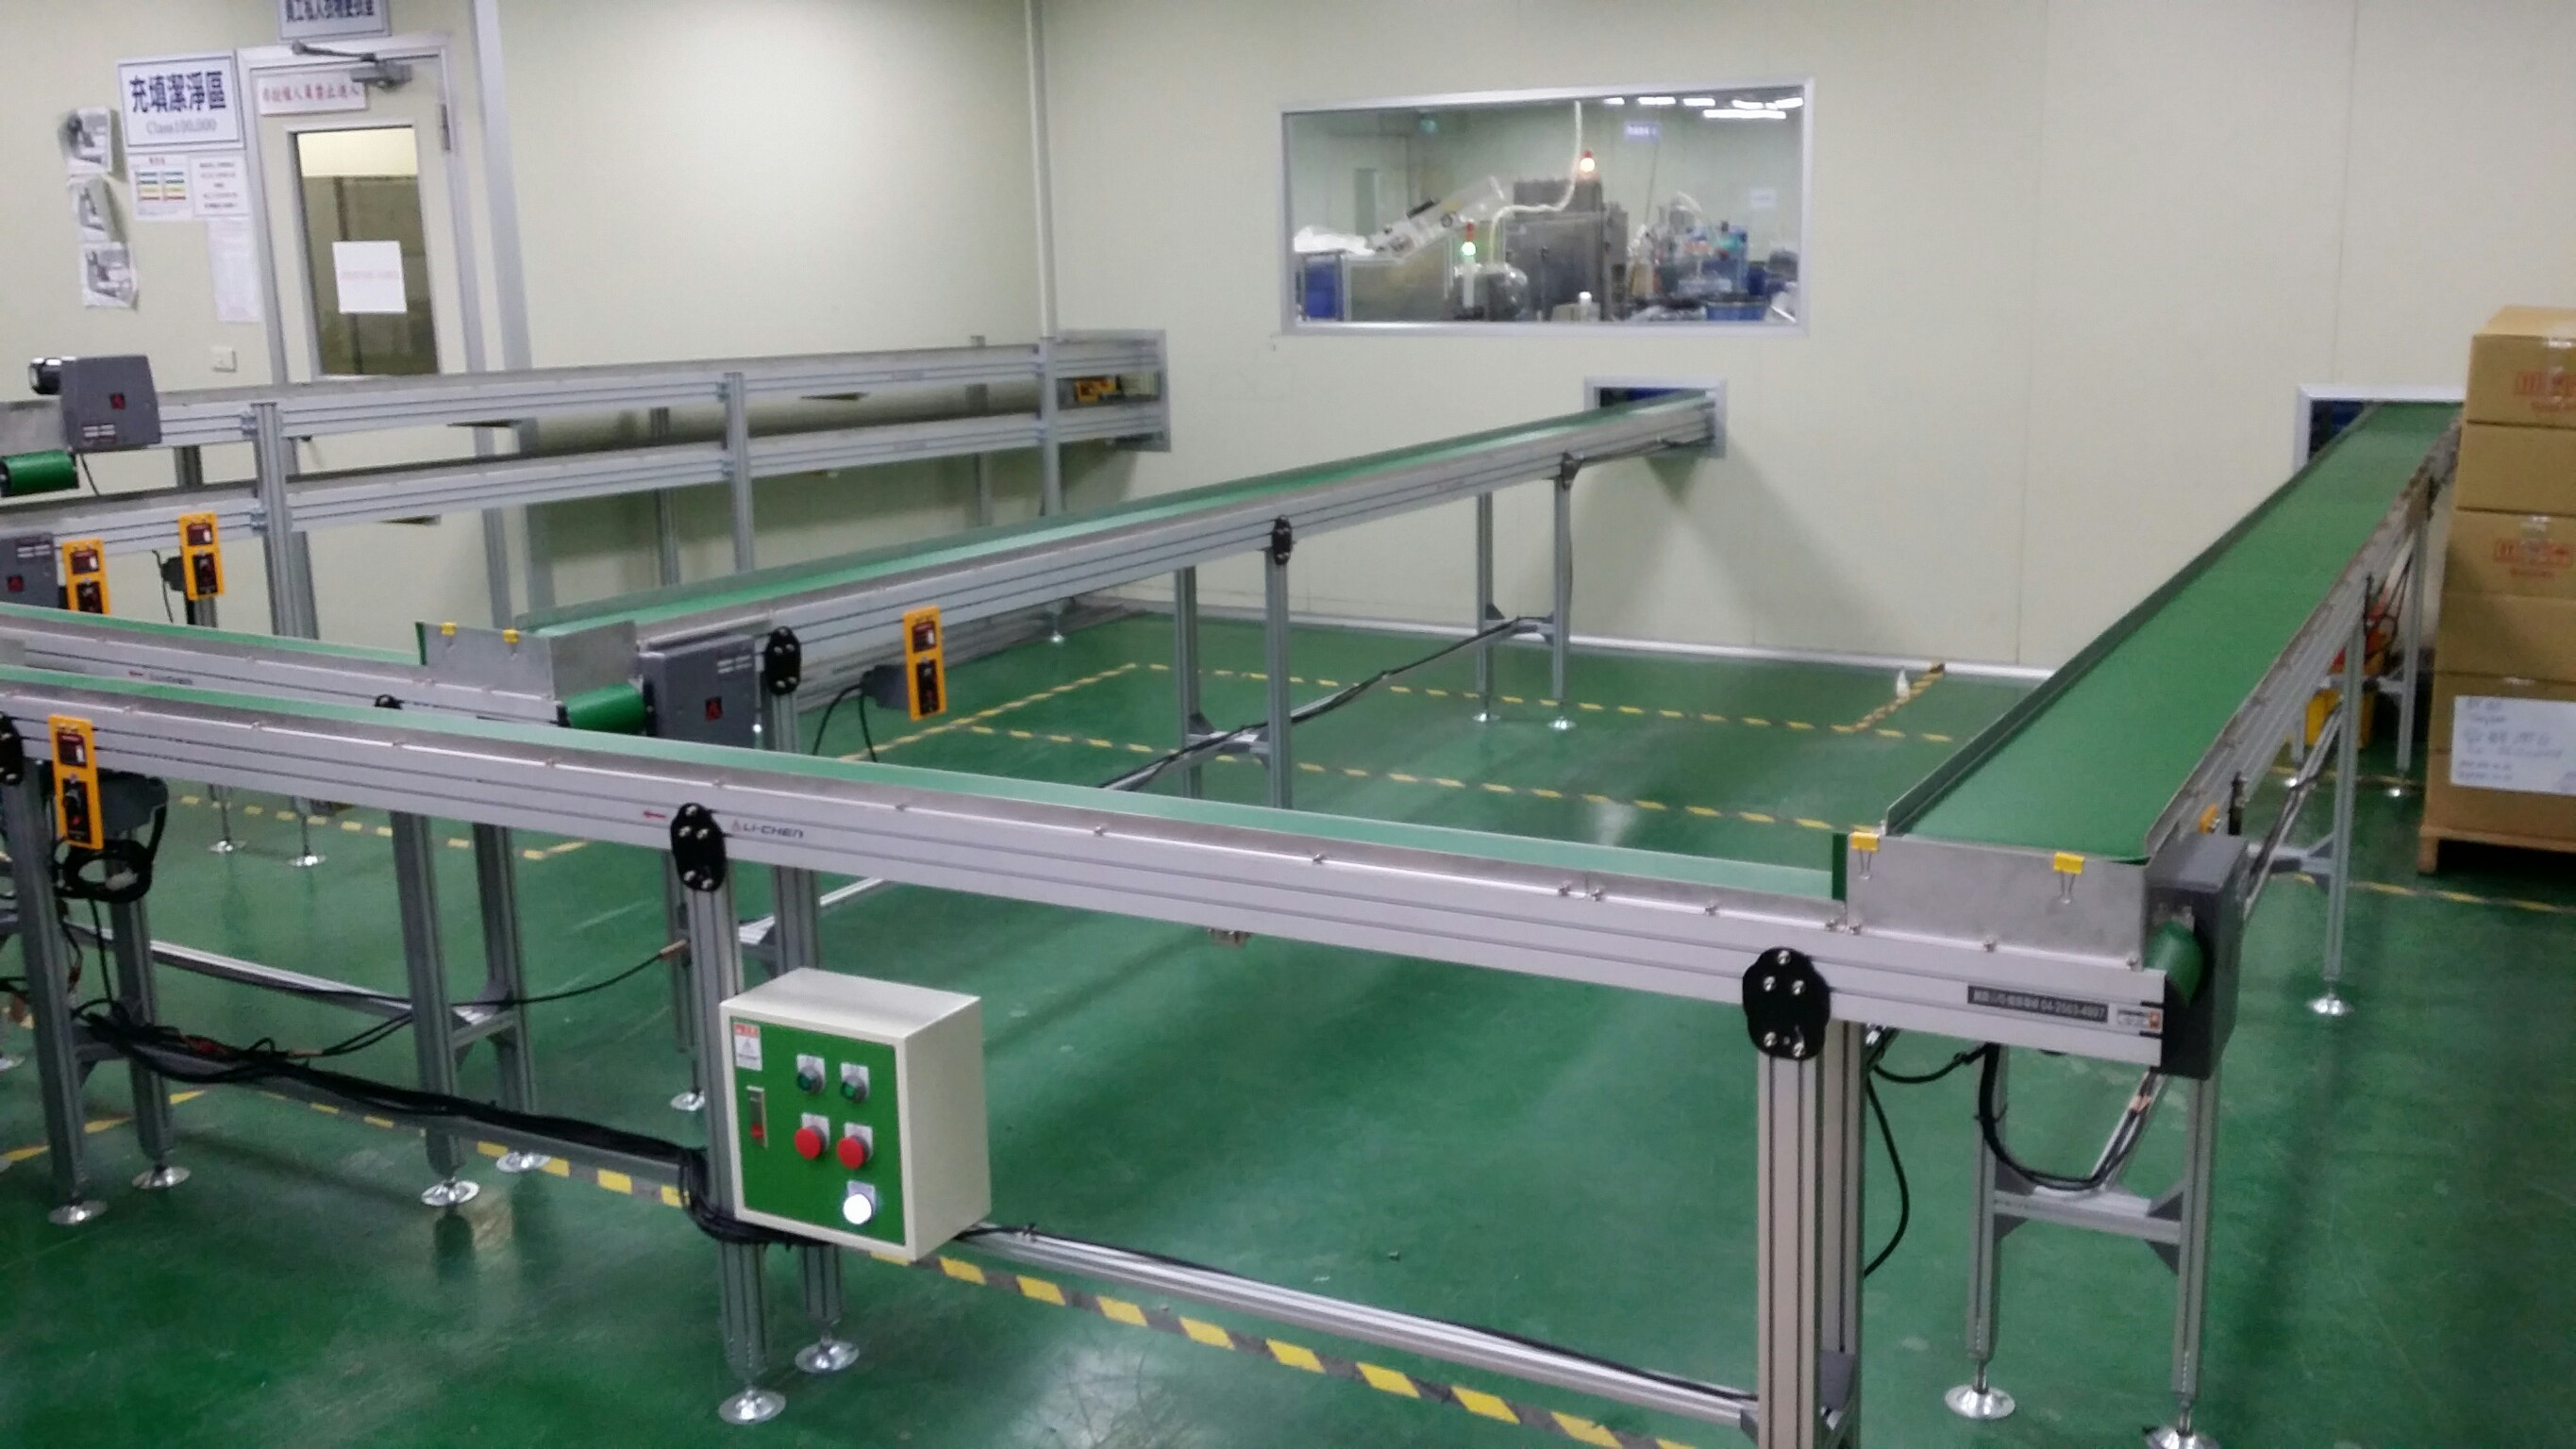 Aluminum extrusion belt flat conveyor - whole plant planning